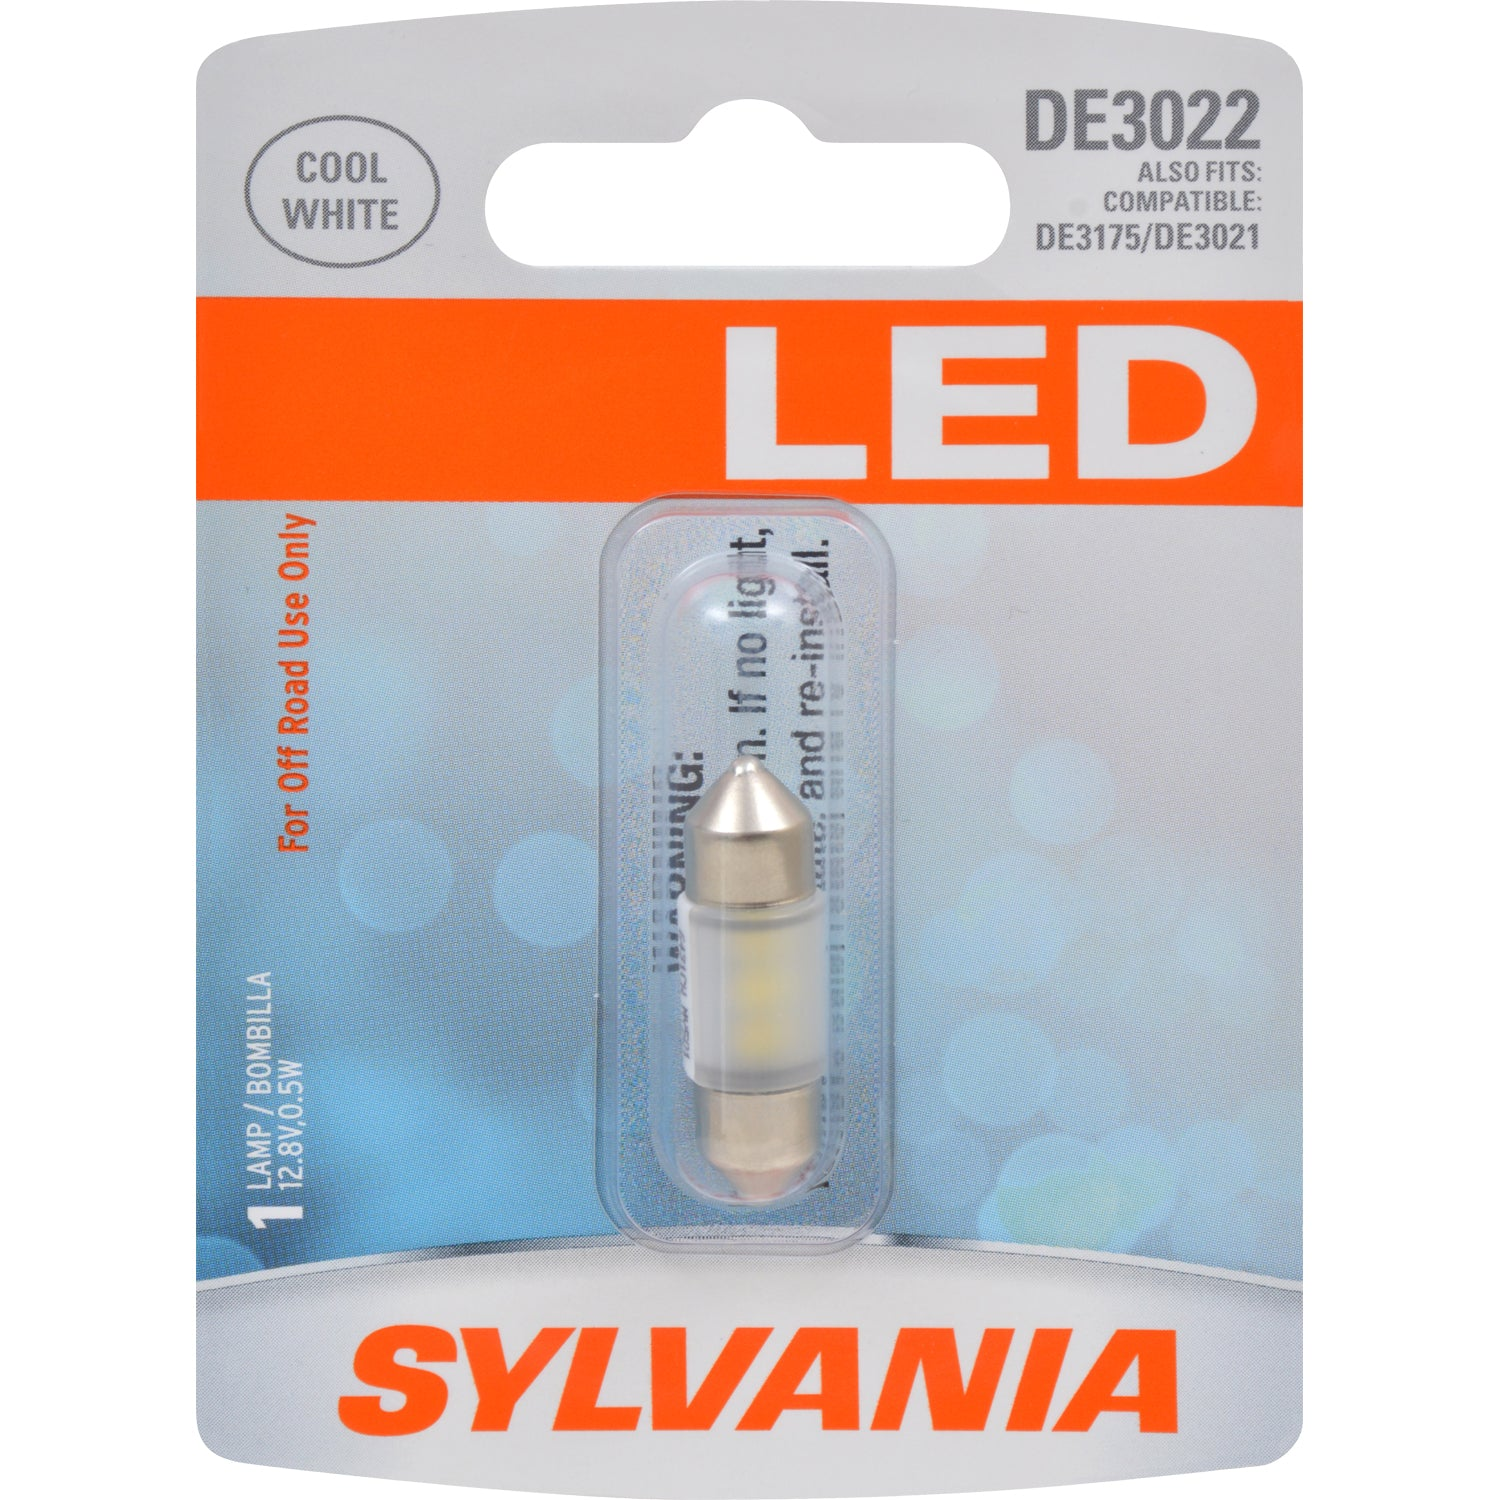 SYLVANIA DE3022 31mm Festoon White LED Automotive Bulb